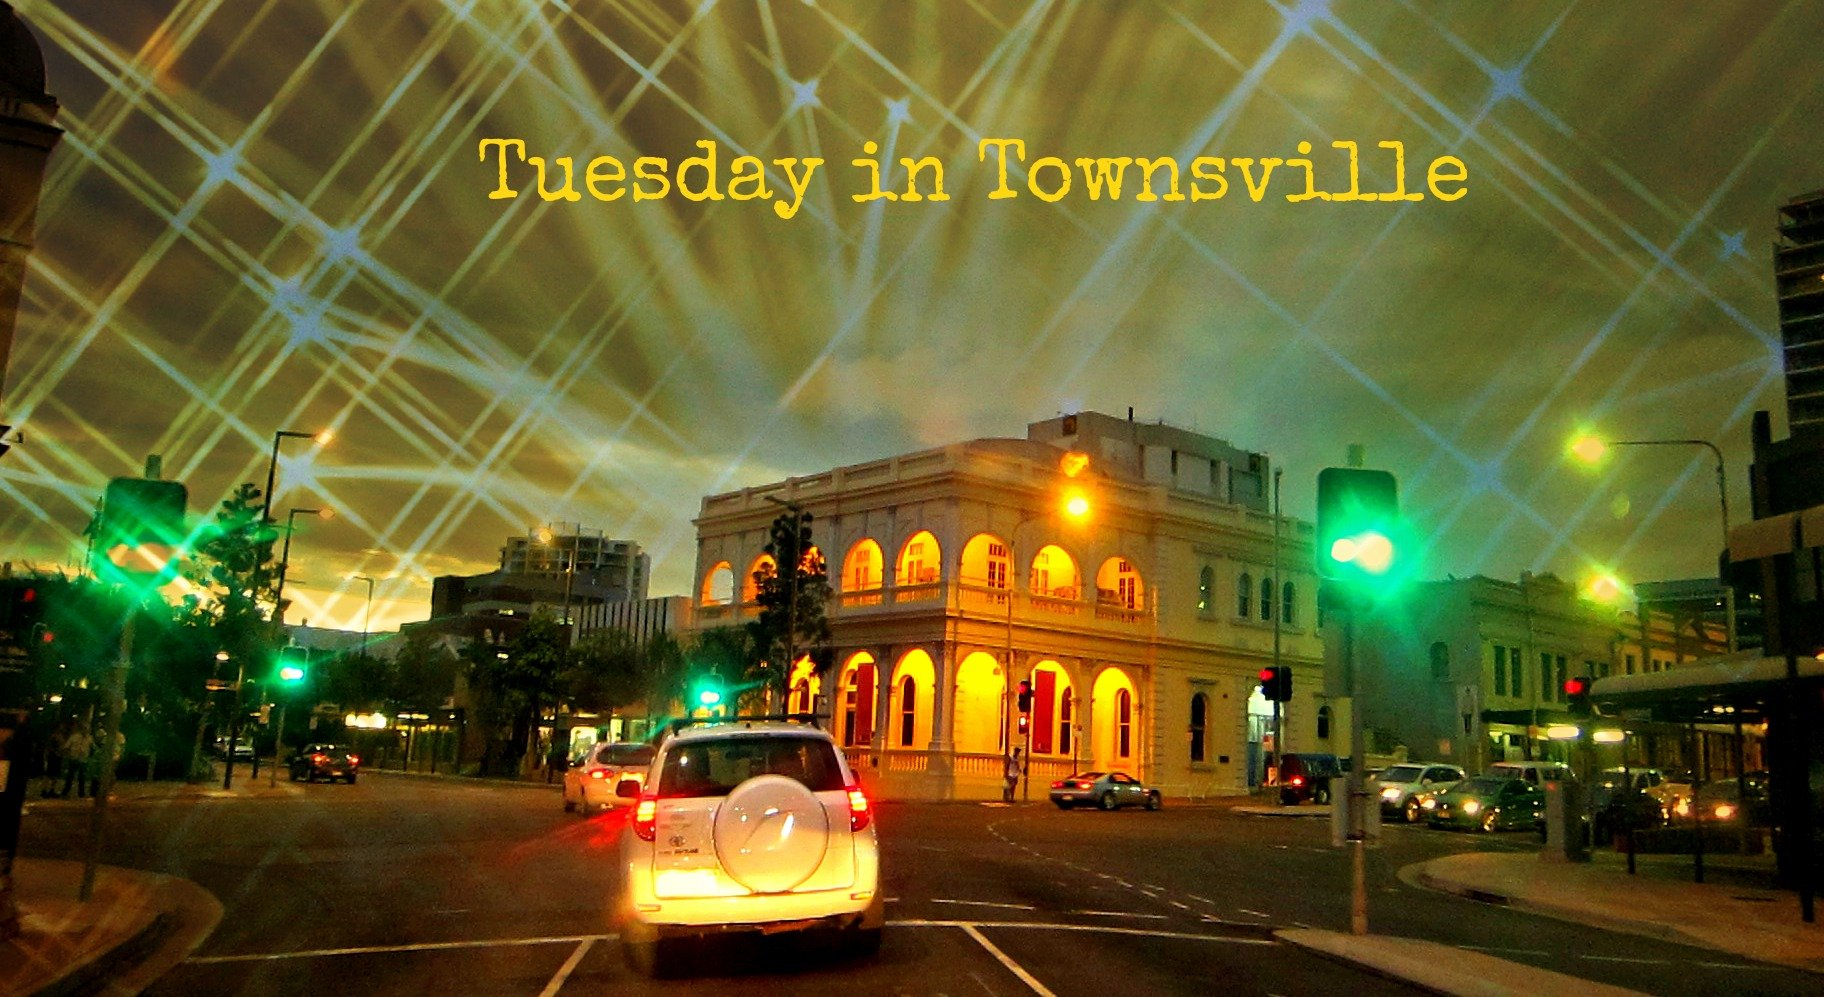 Tuesday in Townsville